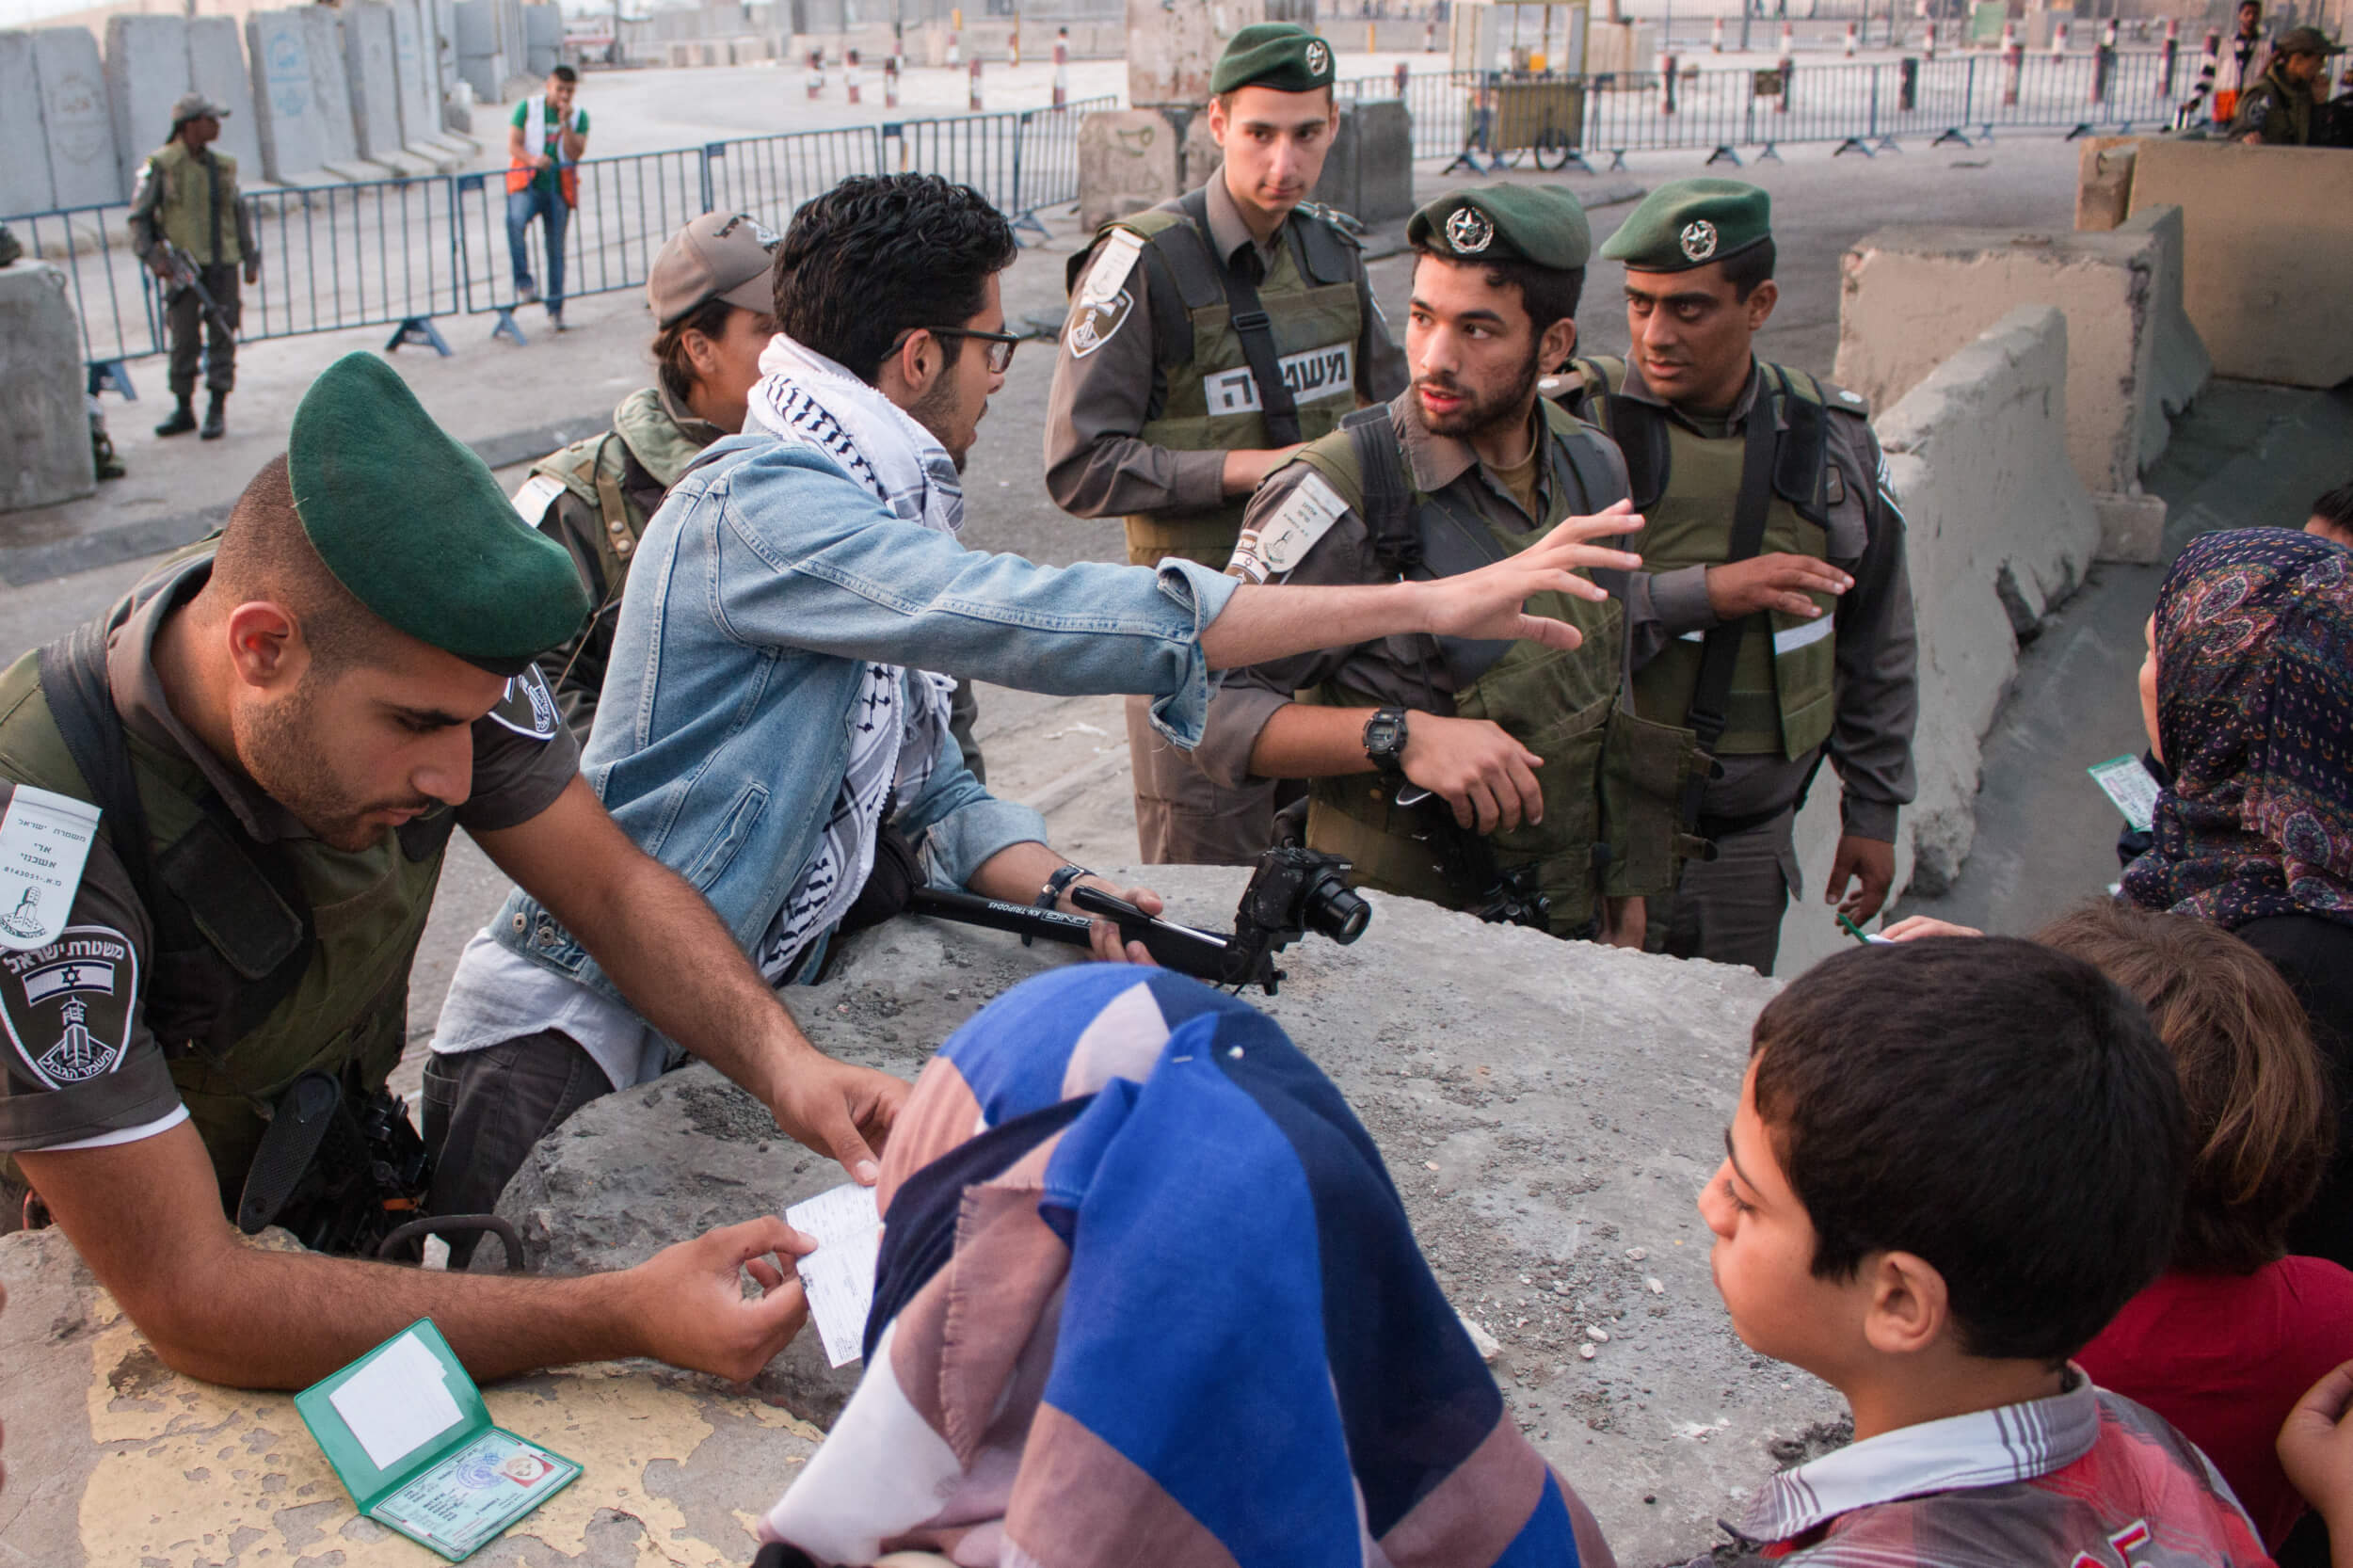 An ISM (International Solidarity Movement) activist confronts an Israeli soldier checking the age of a boy in line. Palestinian children from the West Bank under 12-years-old are allowed entry into Jerusalem for Friday prayers.  Soldiers routinely check the ID cards of young boys to make sure they meet age requirements.(Photo: Karam Saleem)